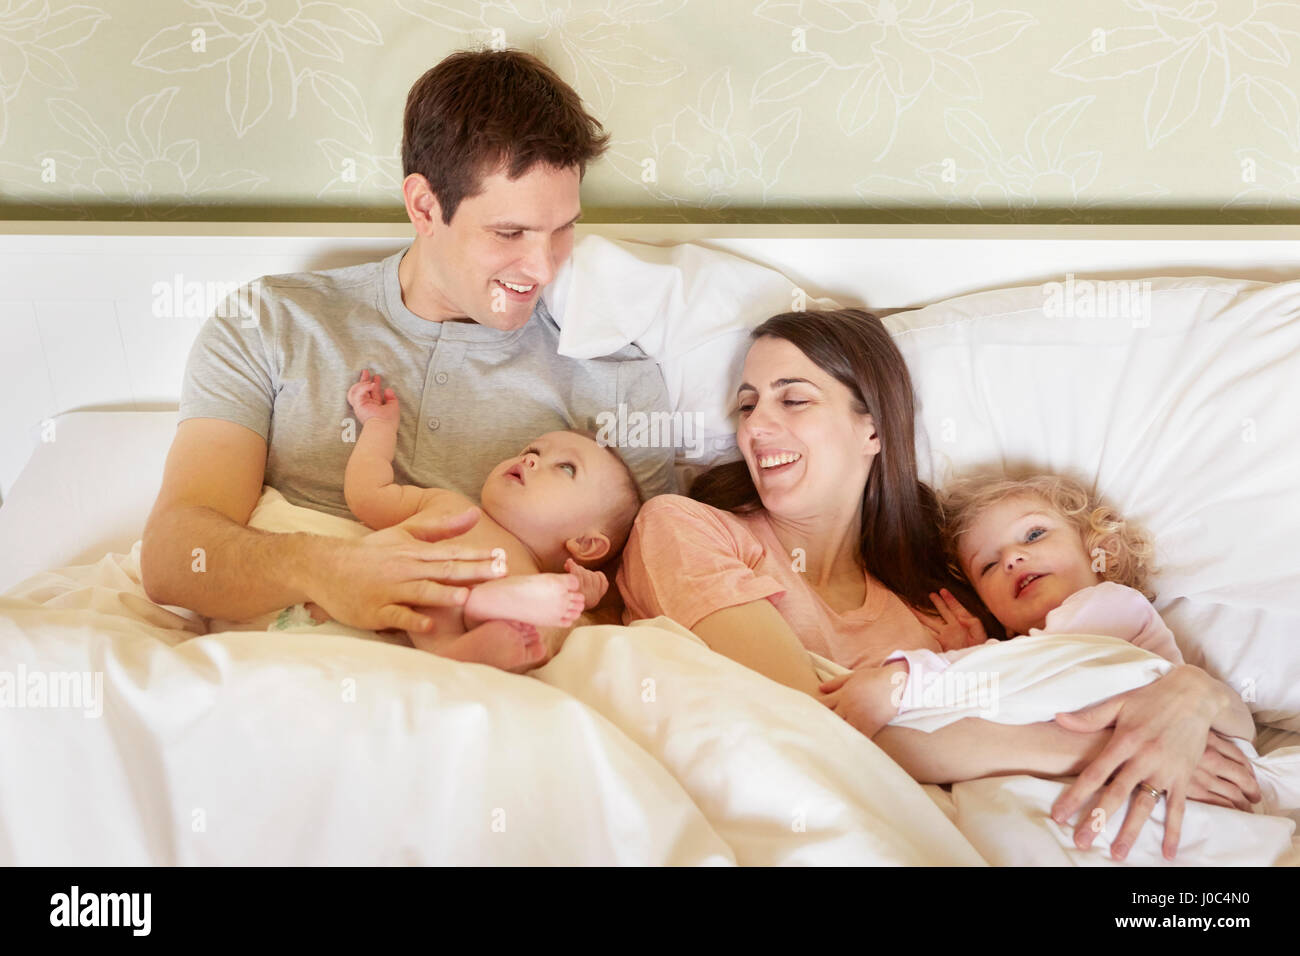 Baby bed with parents - Baby Girl And Toddler Sister Huddled In Bed With Parents